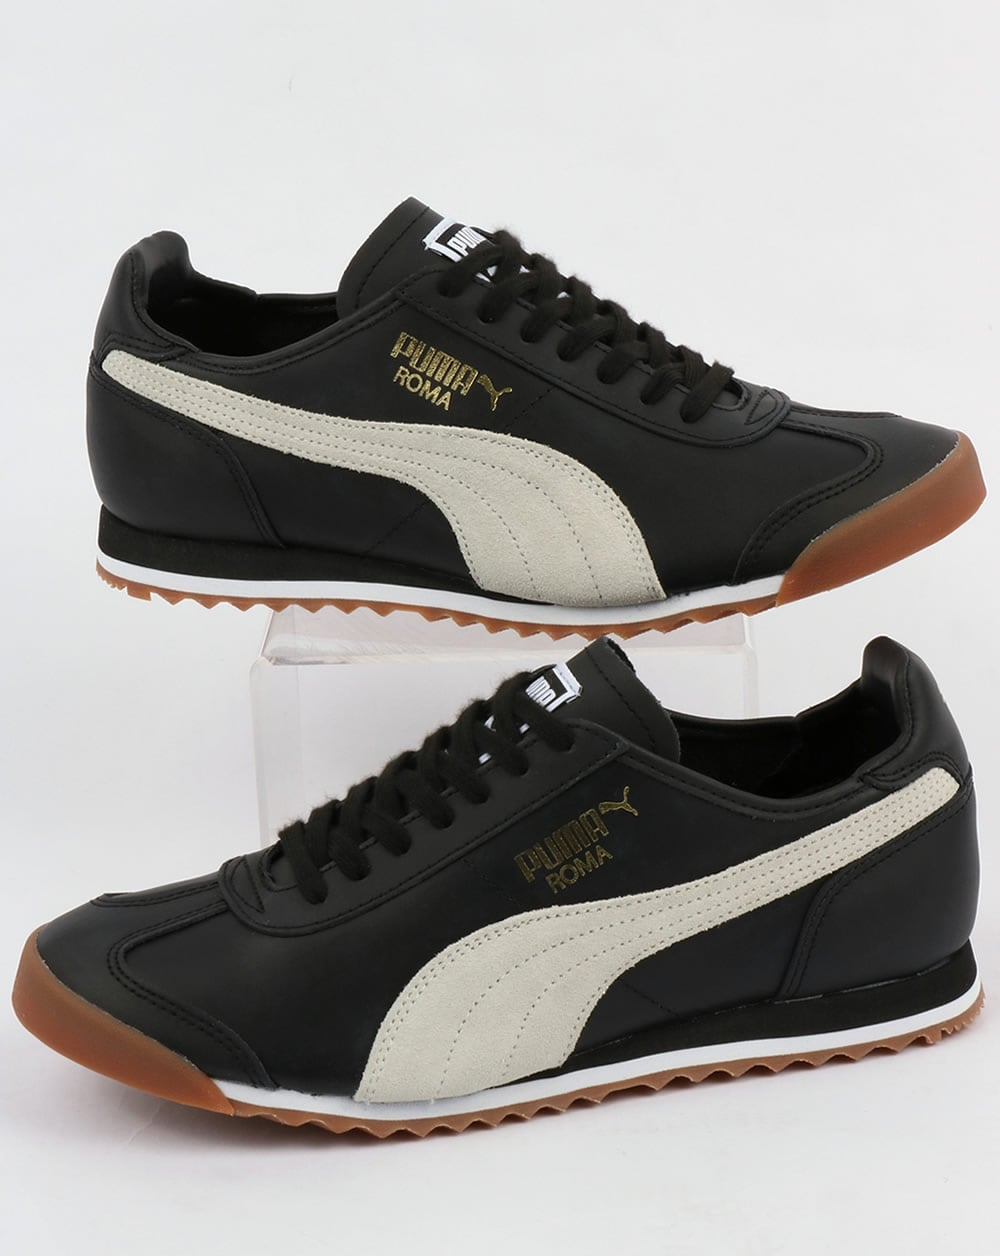 Puma Puma Roma Leather 80s Trainers Black White b8dbc37dd